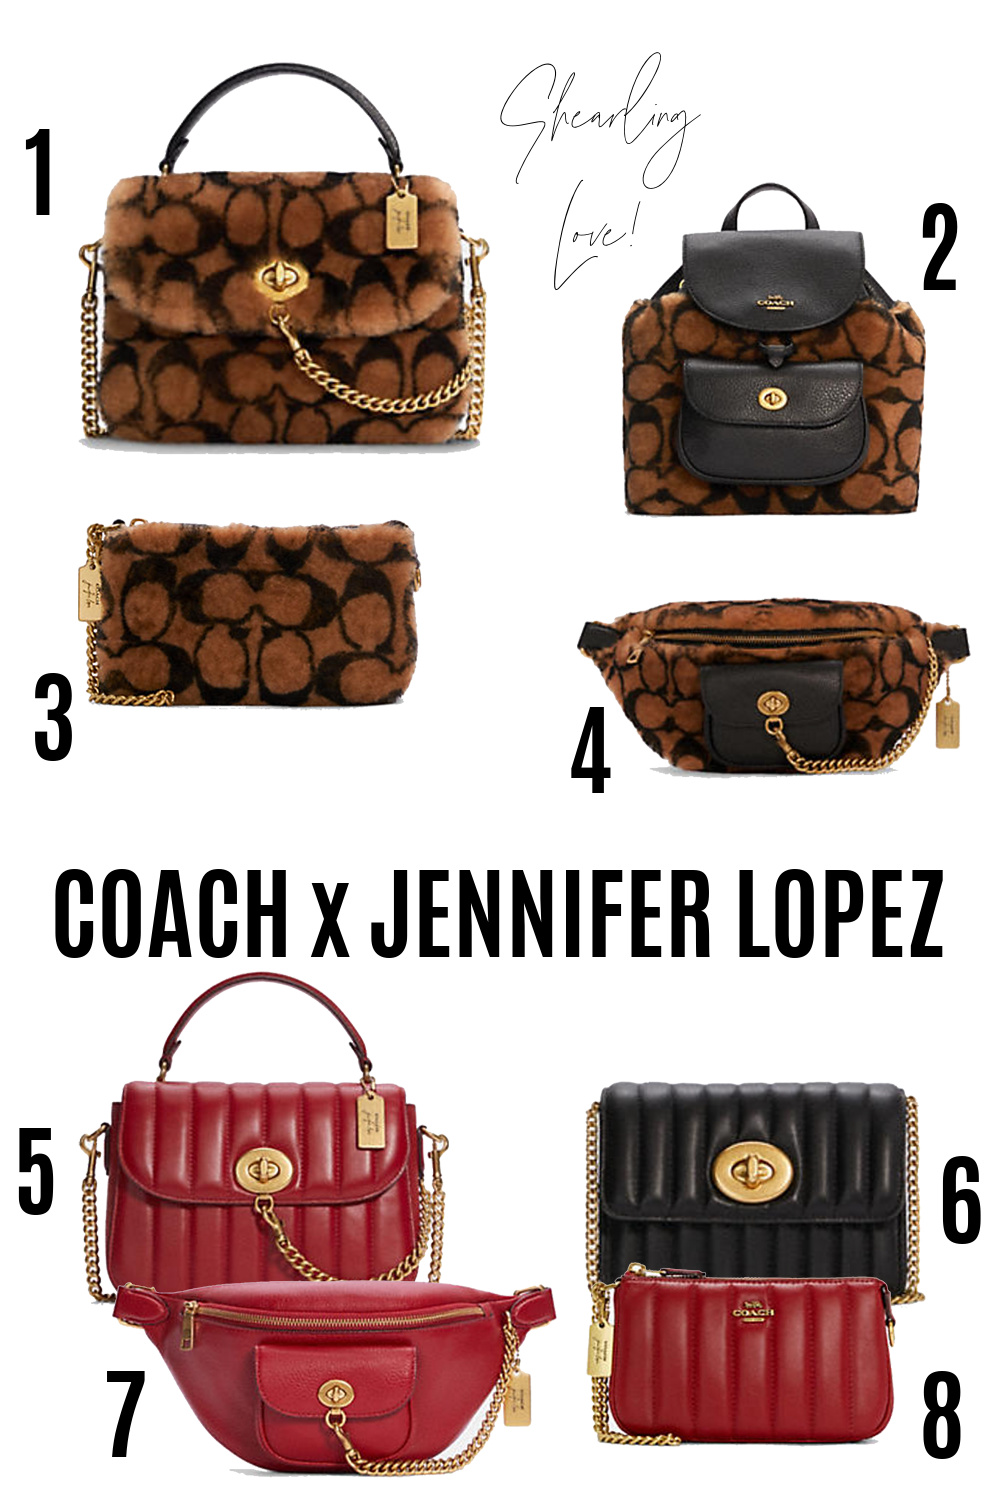 COACH Jennifer Lopez I Shearling and Quilted Leather Handbags